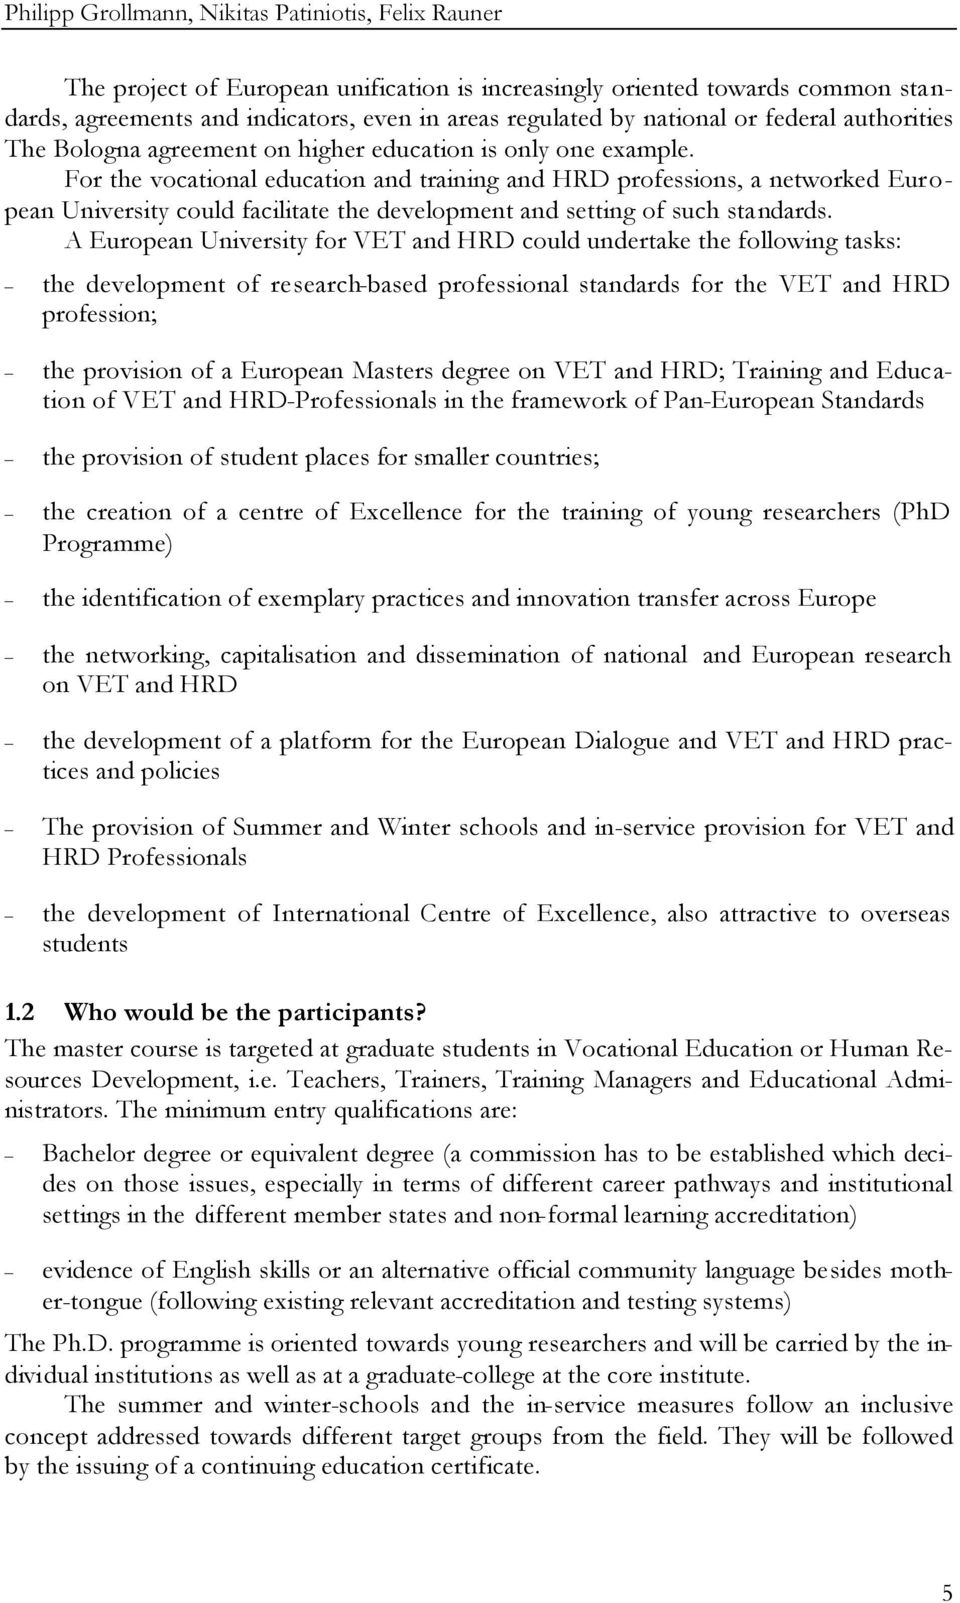 For the vocational education and training and HRD professions, a networked European University could facilitate the development and setting of such standards.